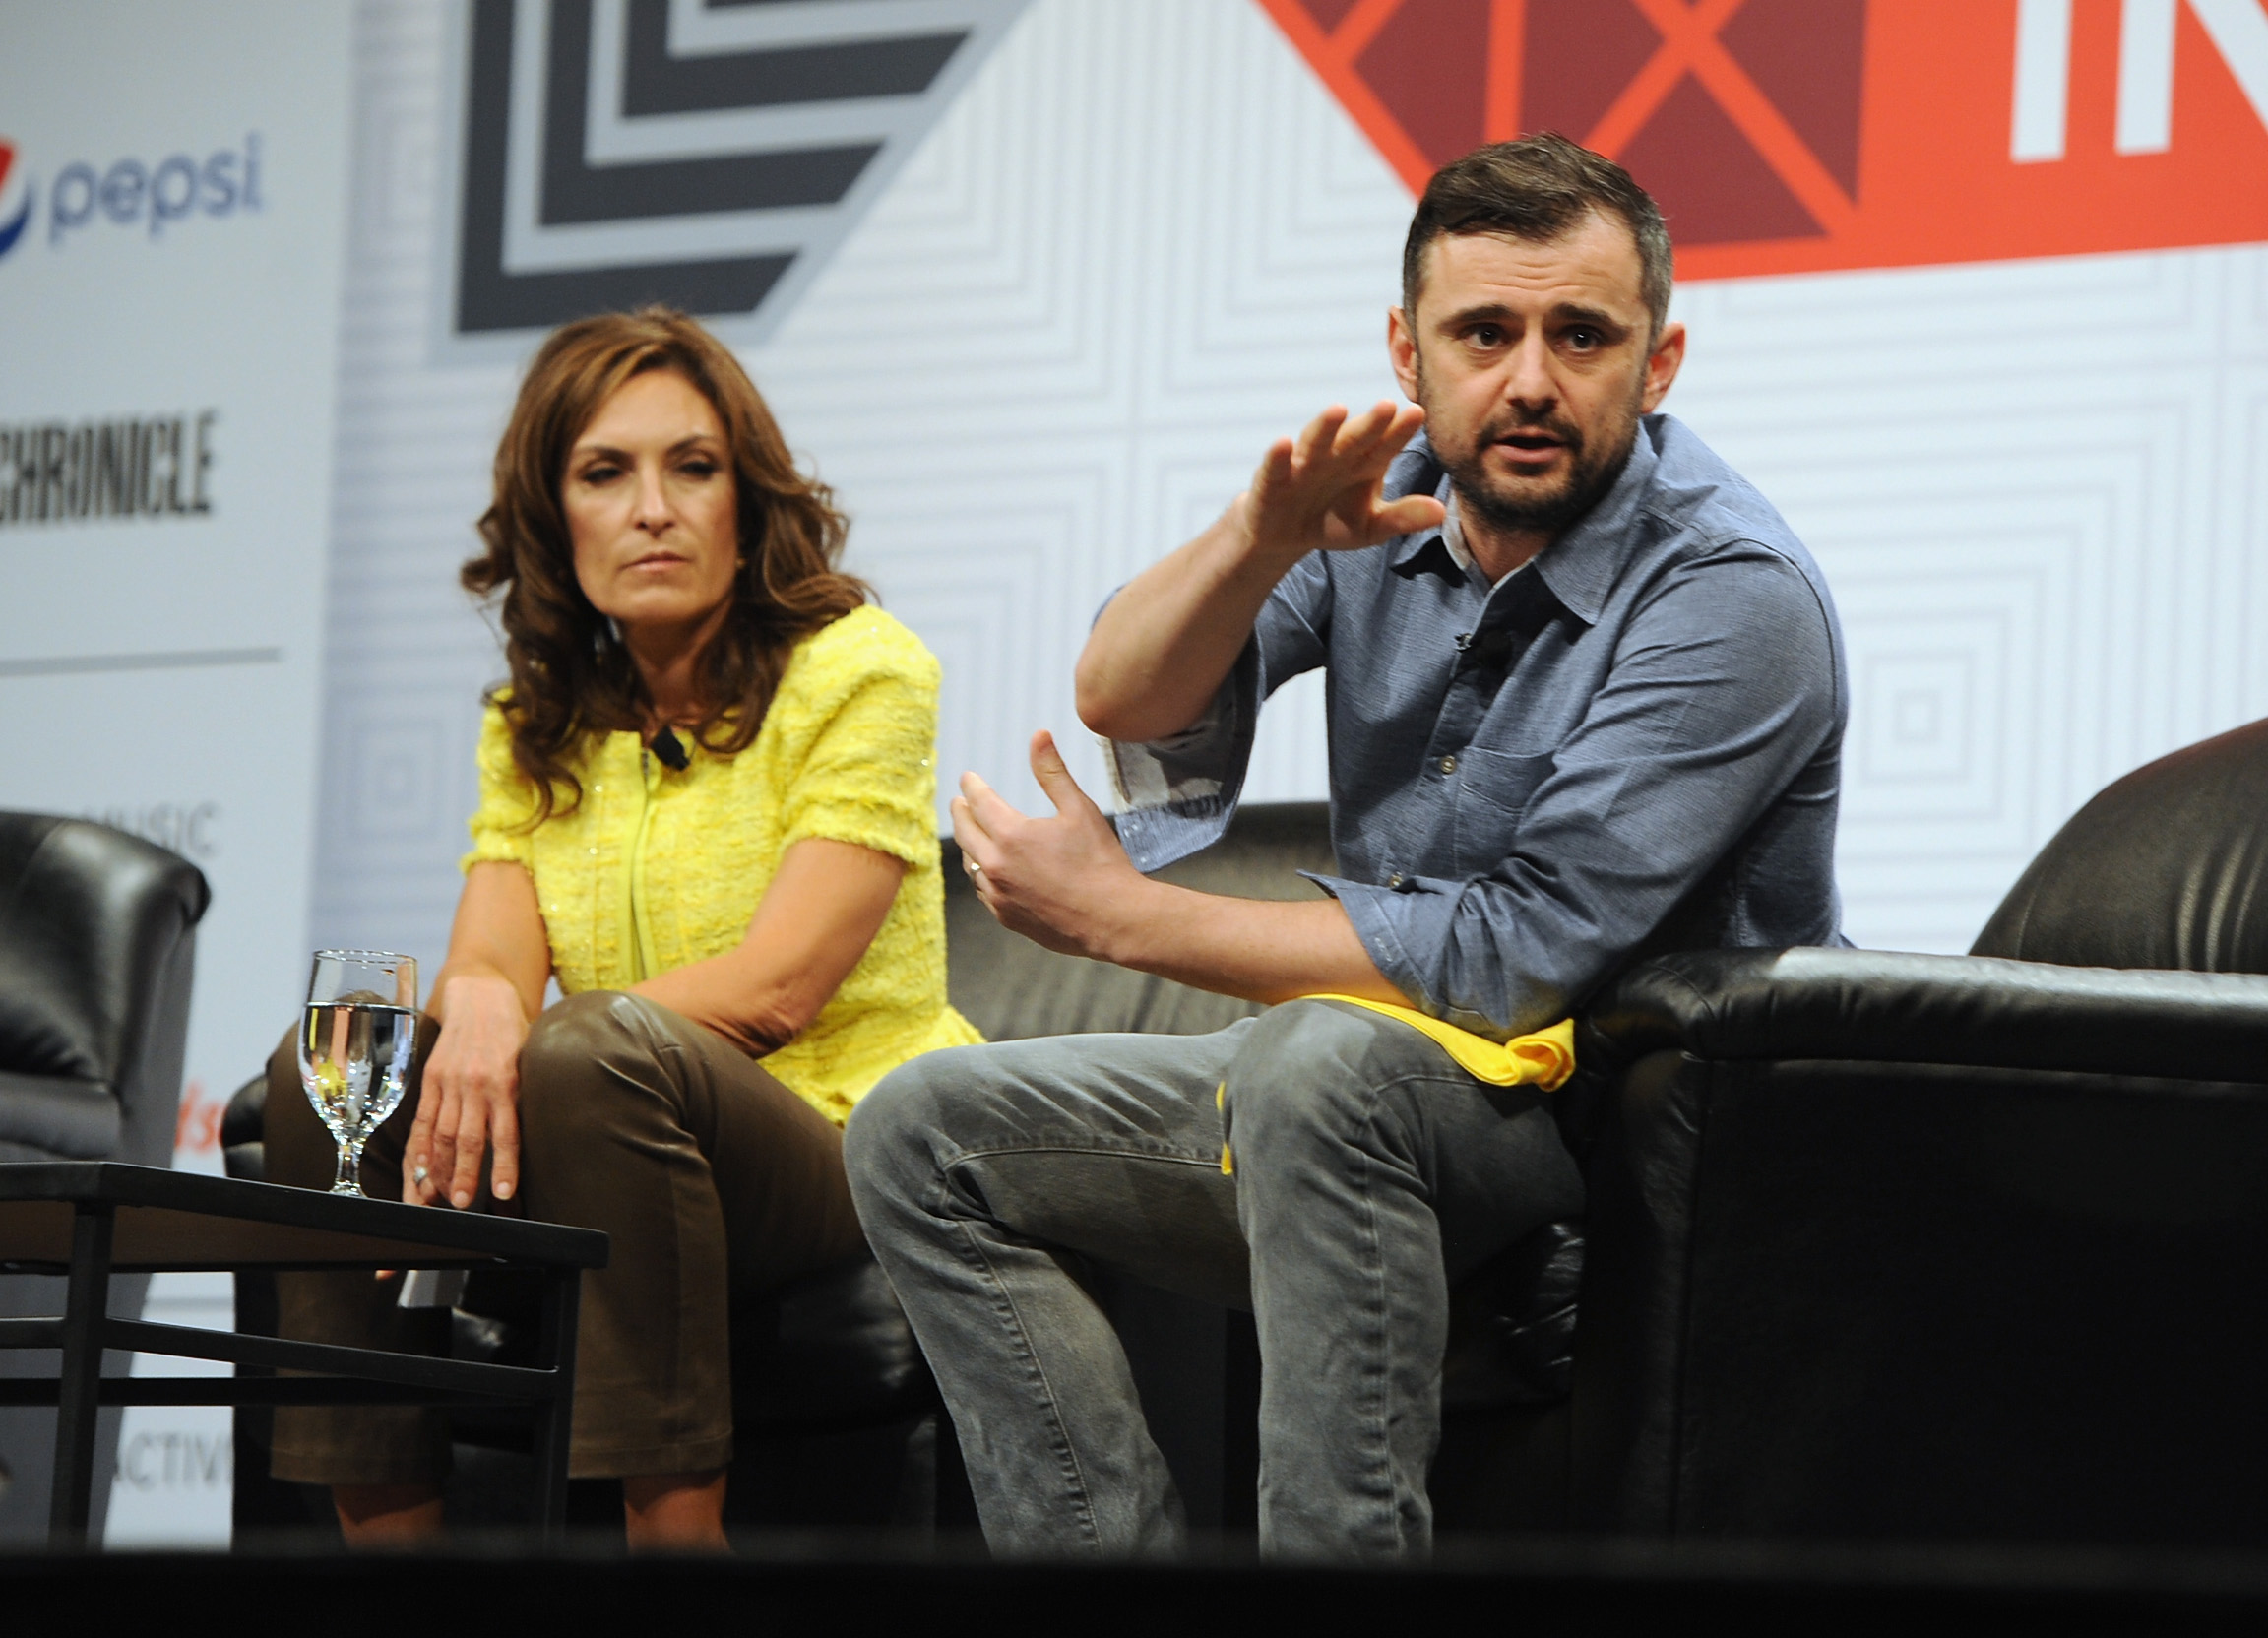 Gary Vaynerchuk, CEO of VaynerMedia, speaks onstage at 'What It Really Takes To Win In Business' during the 2015 SXSW Music, Film + Interactive Festival at the Austin Convention Center on March 14, 2015 in Austin, Texas.